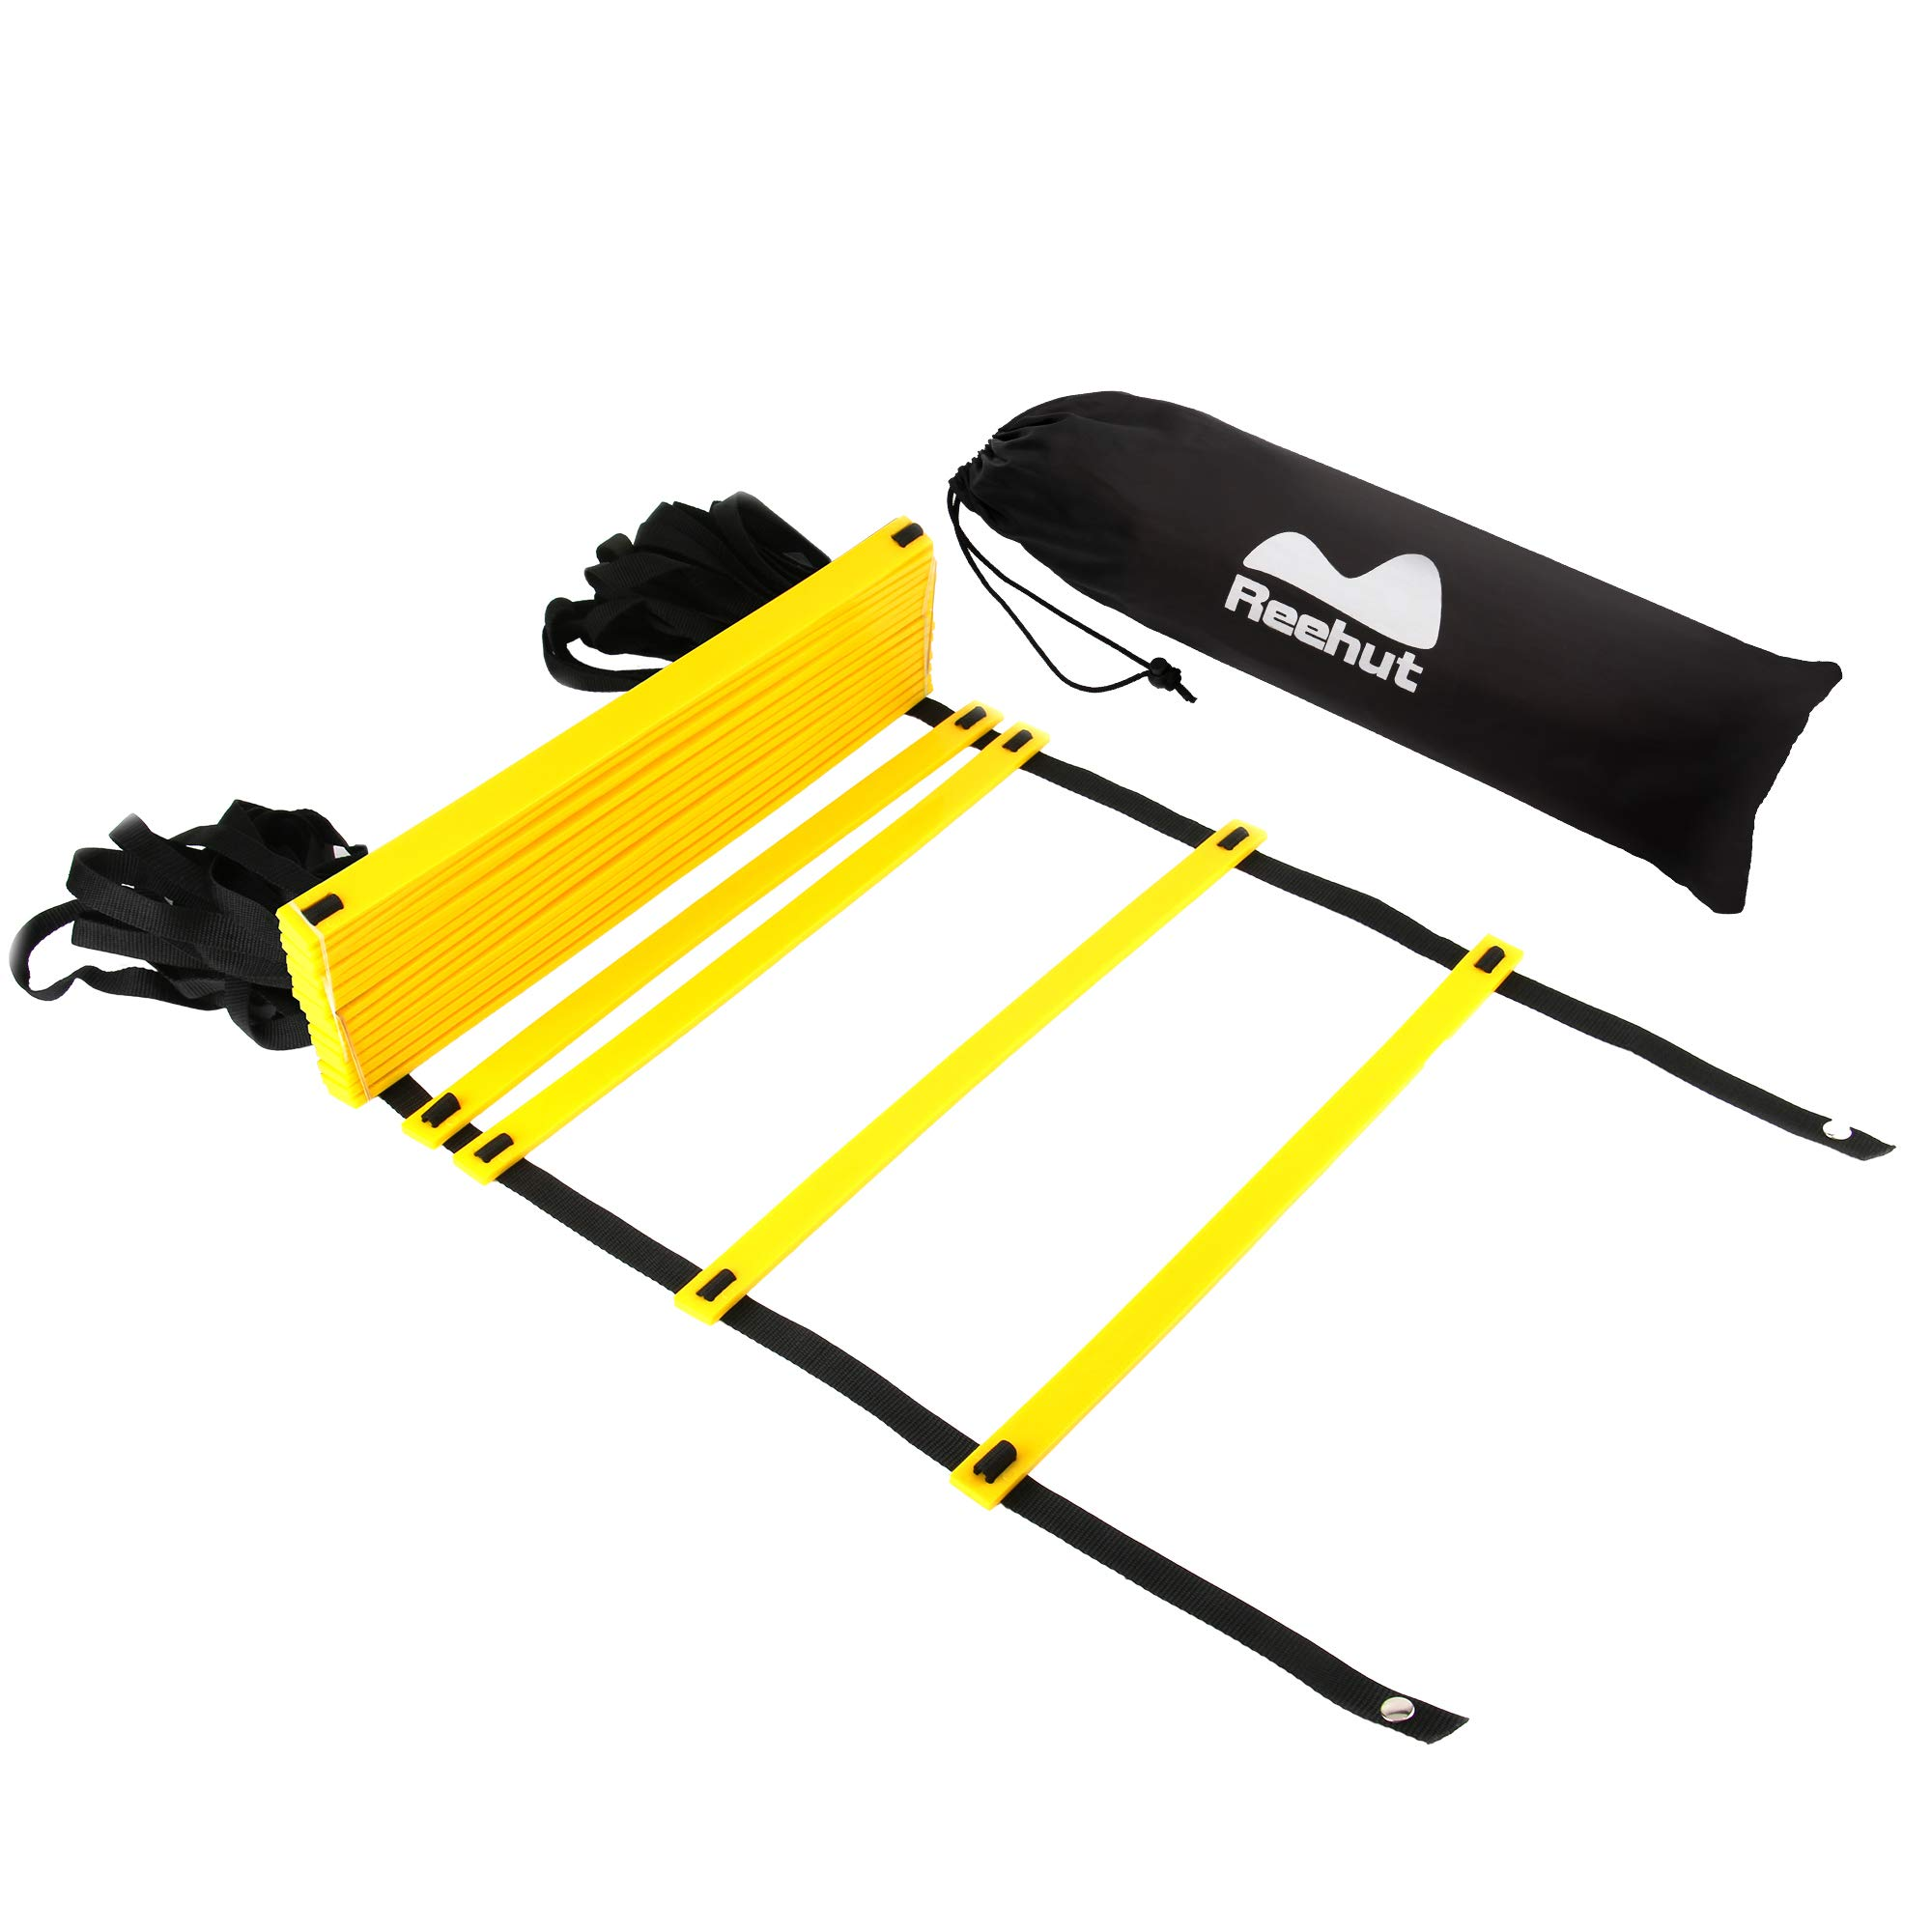 REEHUT Durable Agility Ladder W/Bonus Carry Bag - Speed Training Equipment for High Intensity Footwork - Great for Soccer Workout, Football Drills, Basketball and More - Yellow, 12 Rungs by REEHUT